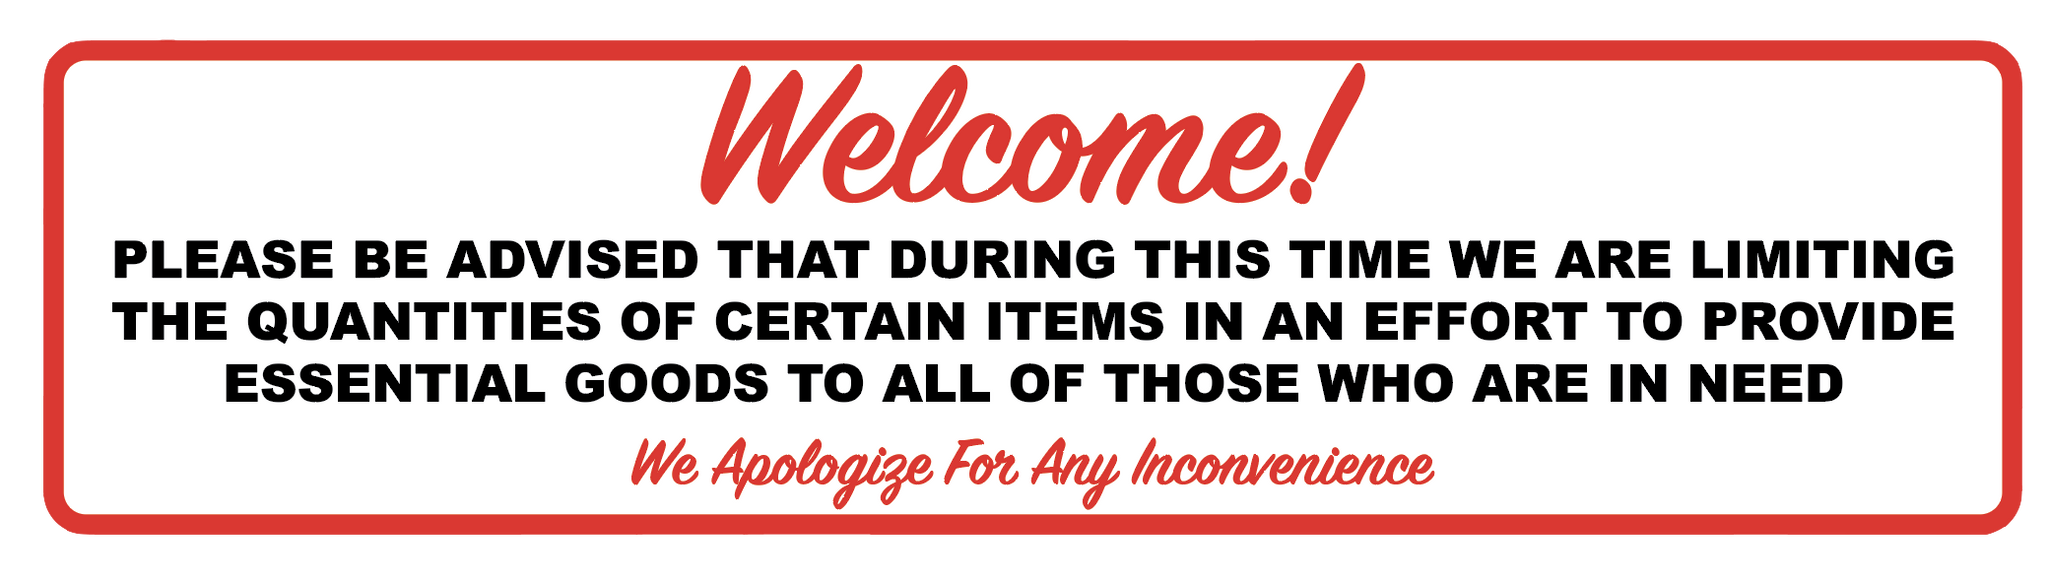 """Welcome: Limiting Quantities of Essential Goods"" Adhesive Durable Vinyl Decal- 6x24"""